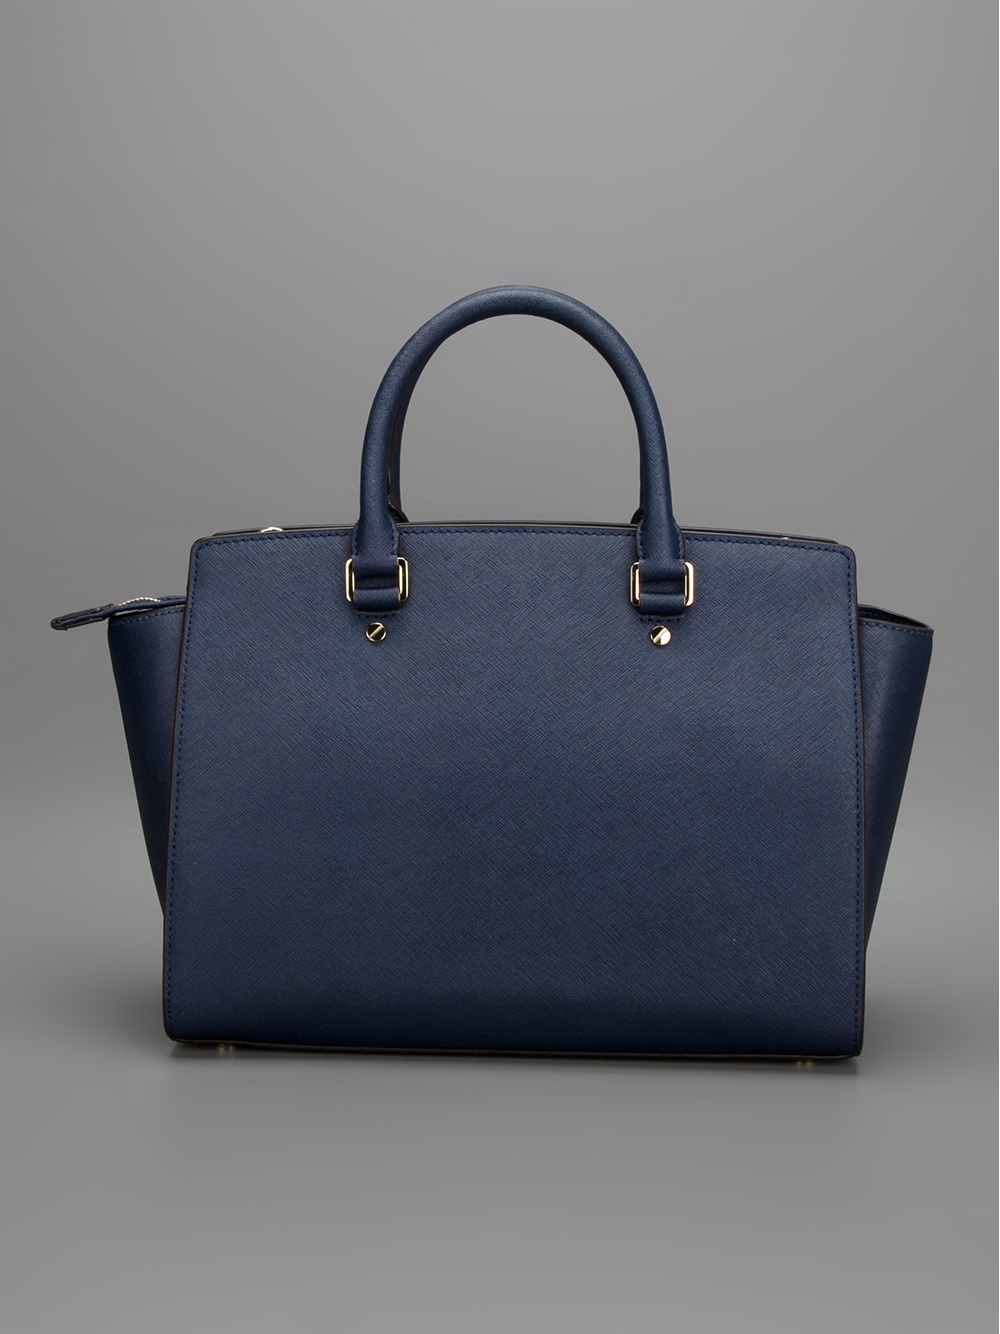 michael michael kors selma tote in blue navy lyst. Black Bedroom Furniture Sets. Home Design Ideas